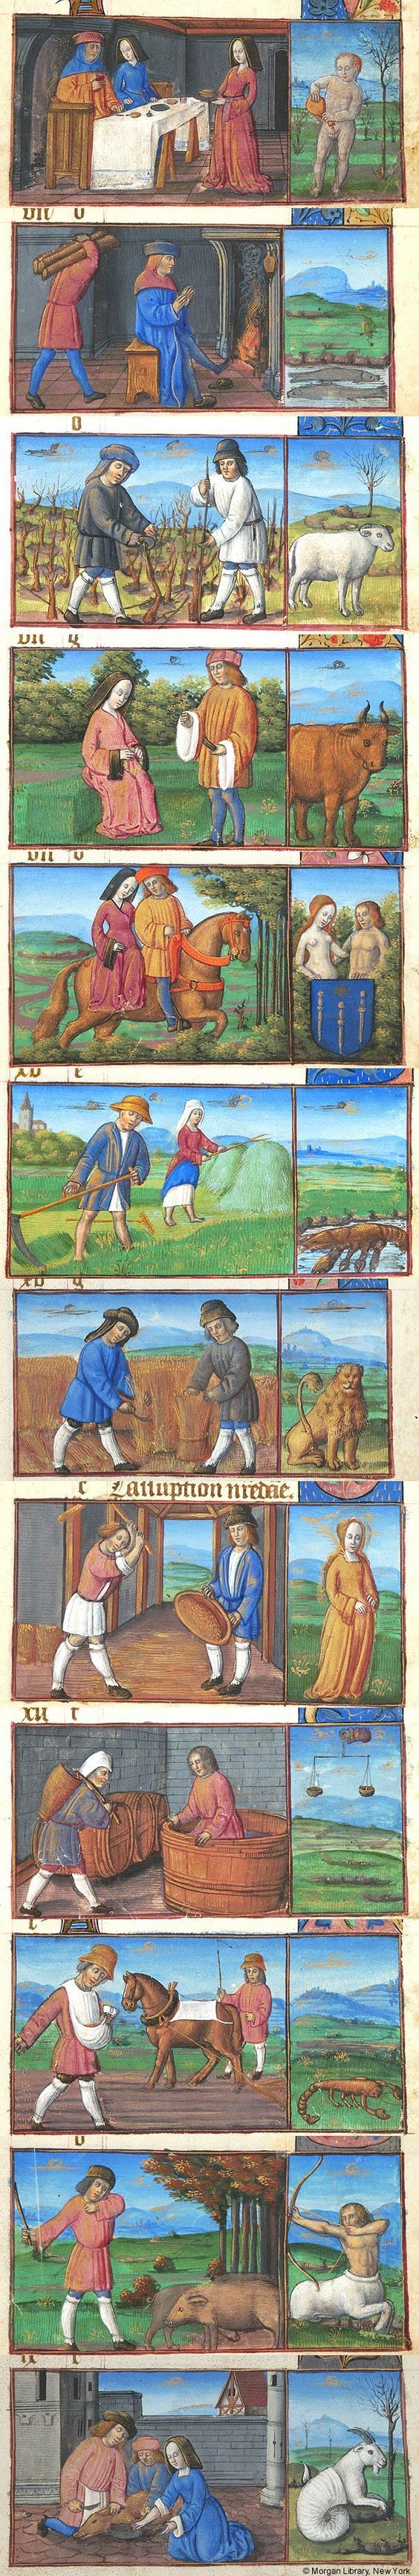 Signs of the Zodiac   Book of Hours   France, Langres   1495-1500   The Morgan Library & Museum